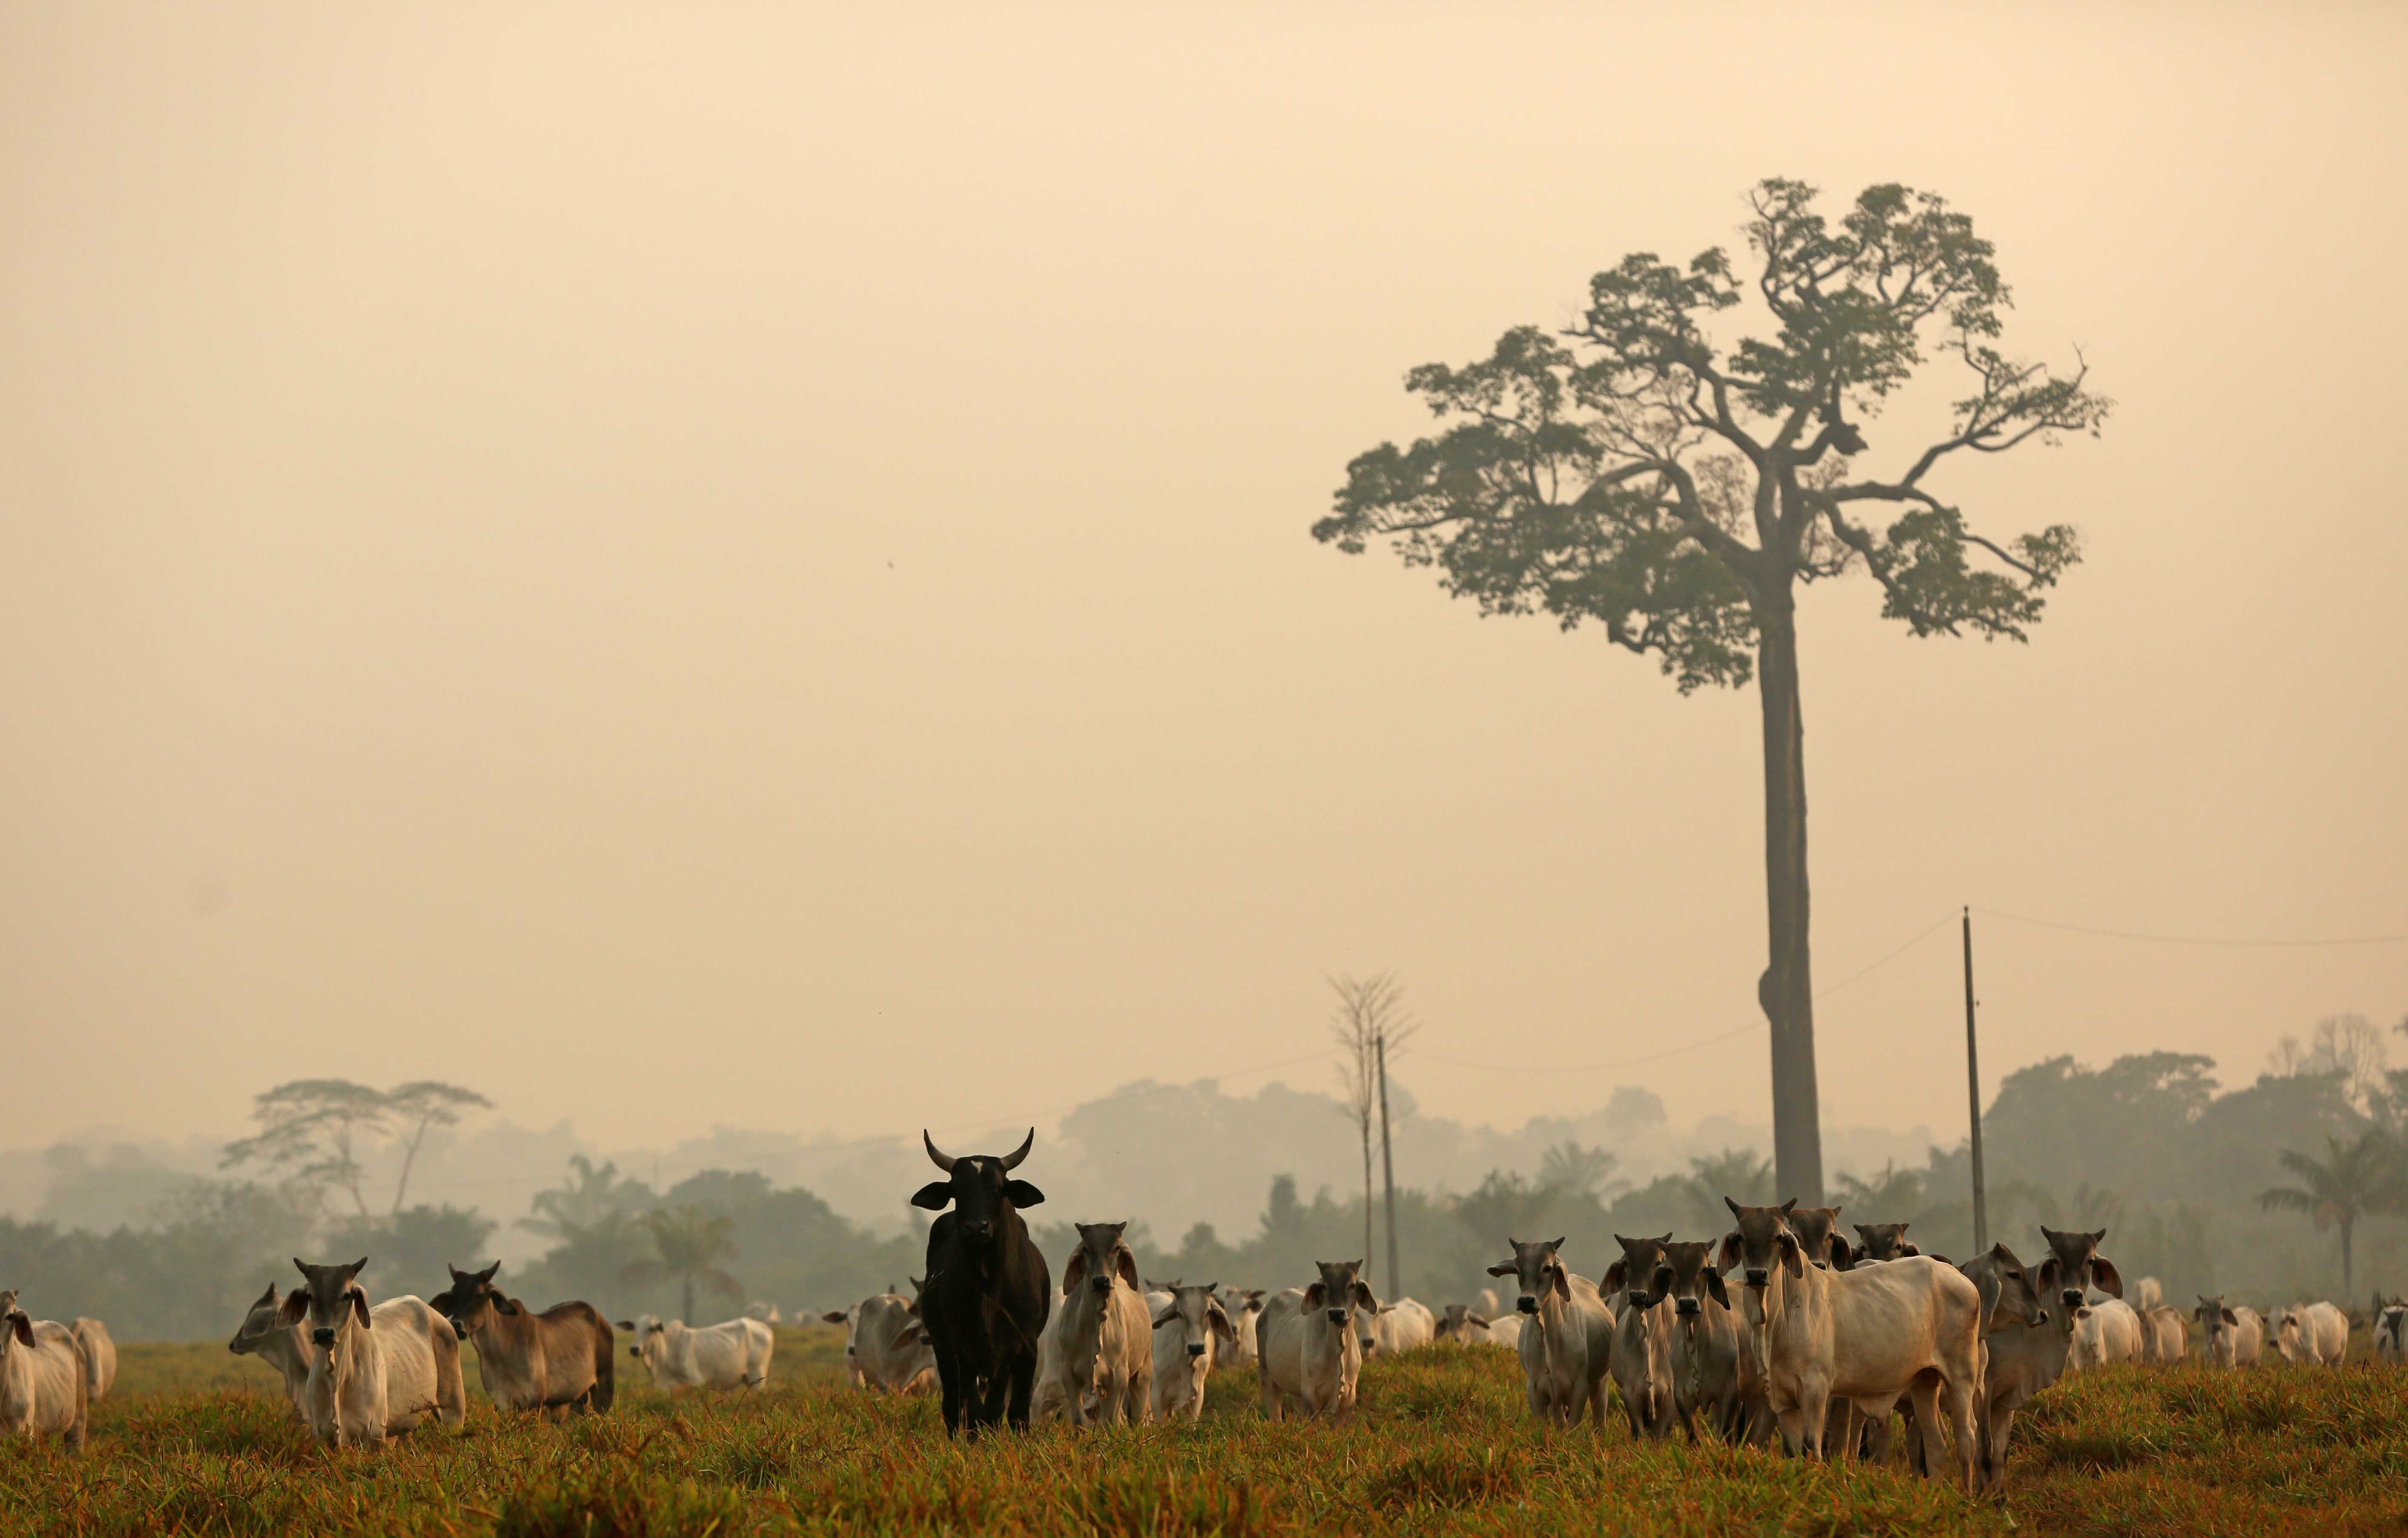 24 August 2019: Cattle grazing on land that used to be Amazon forest before it was cleared by fire in Boca do Acre, Amazonas state, Brazil. (Photograph by Reuters/Bruno Kelly)